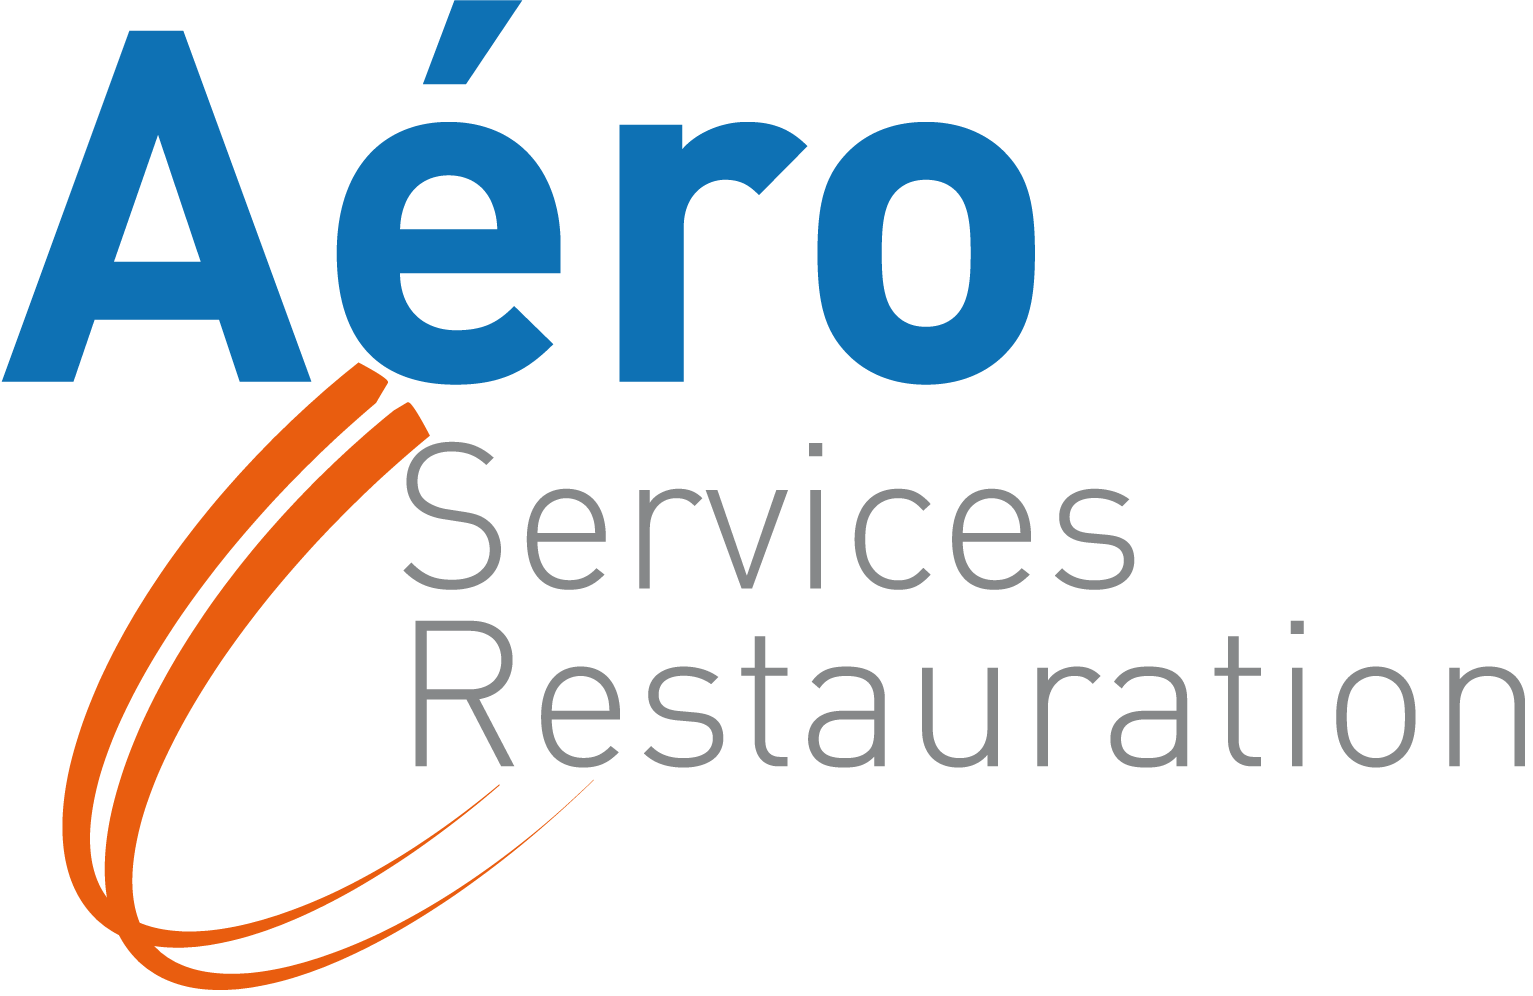 Aero Services Restauration